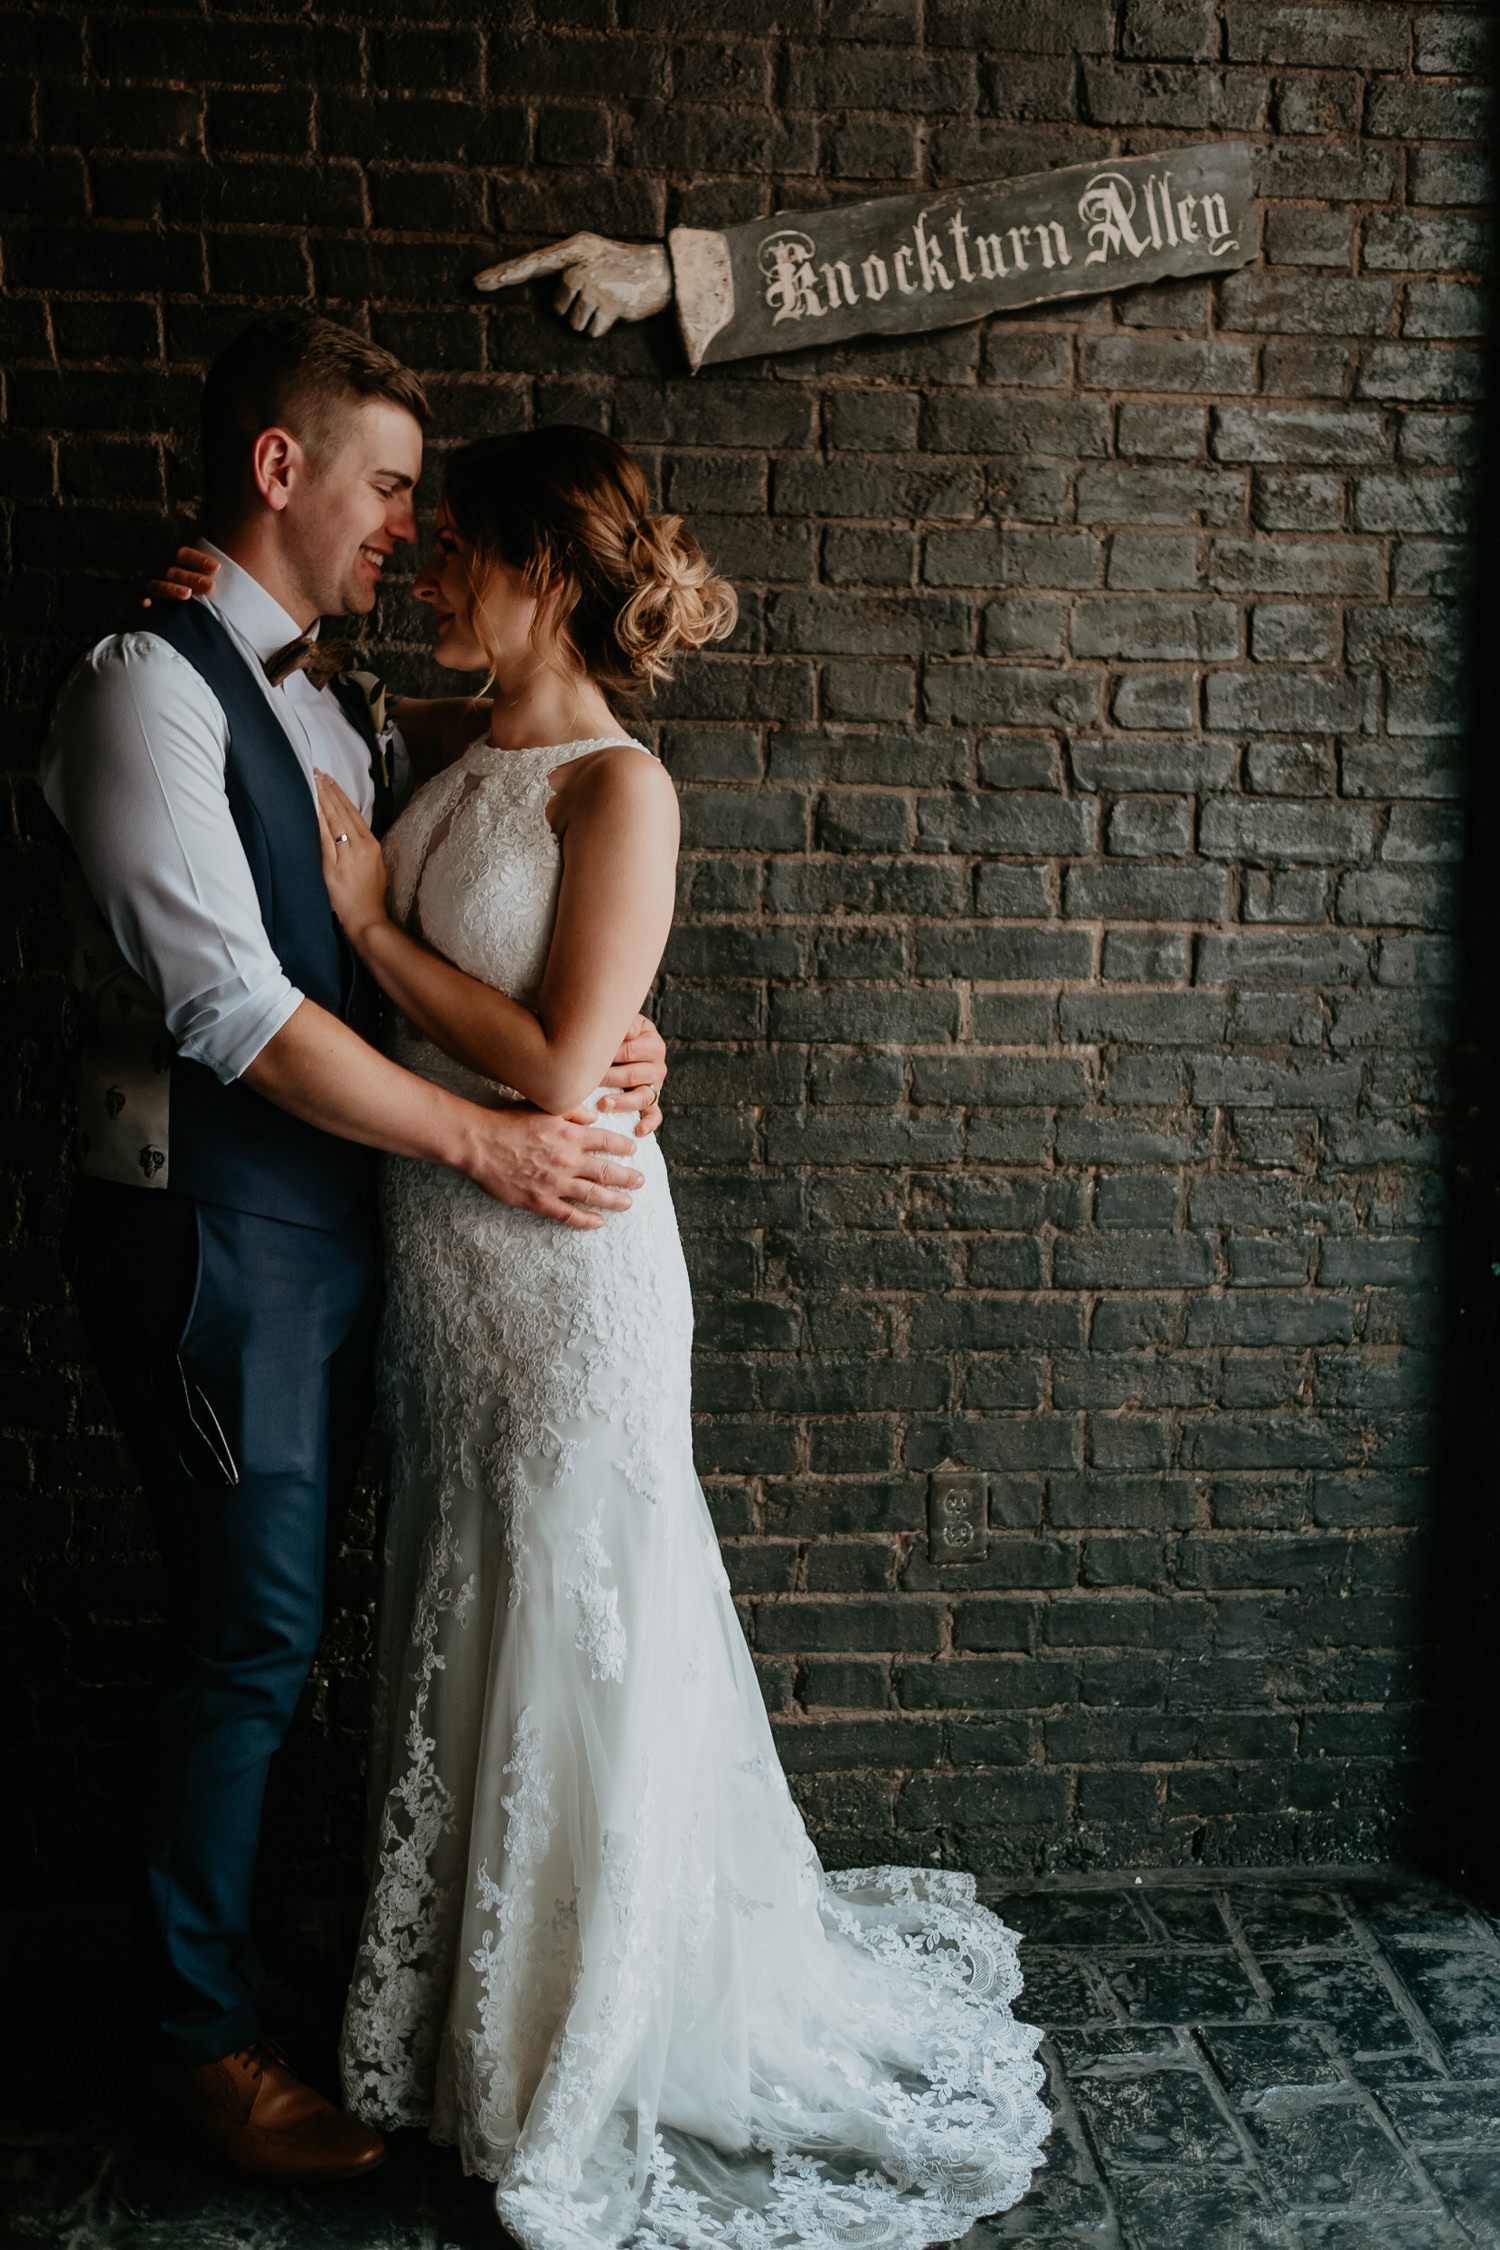 newlyweds facing each other in front of brick wall with Knockturn Alley sign pointing at them